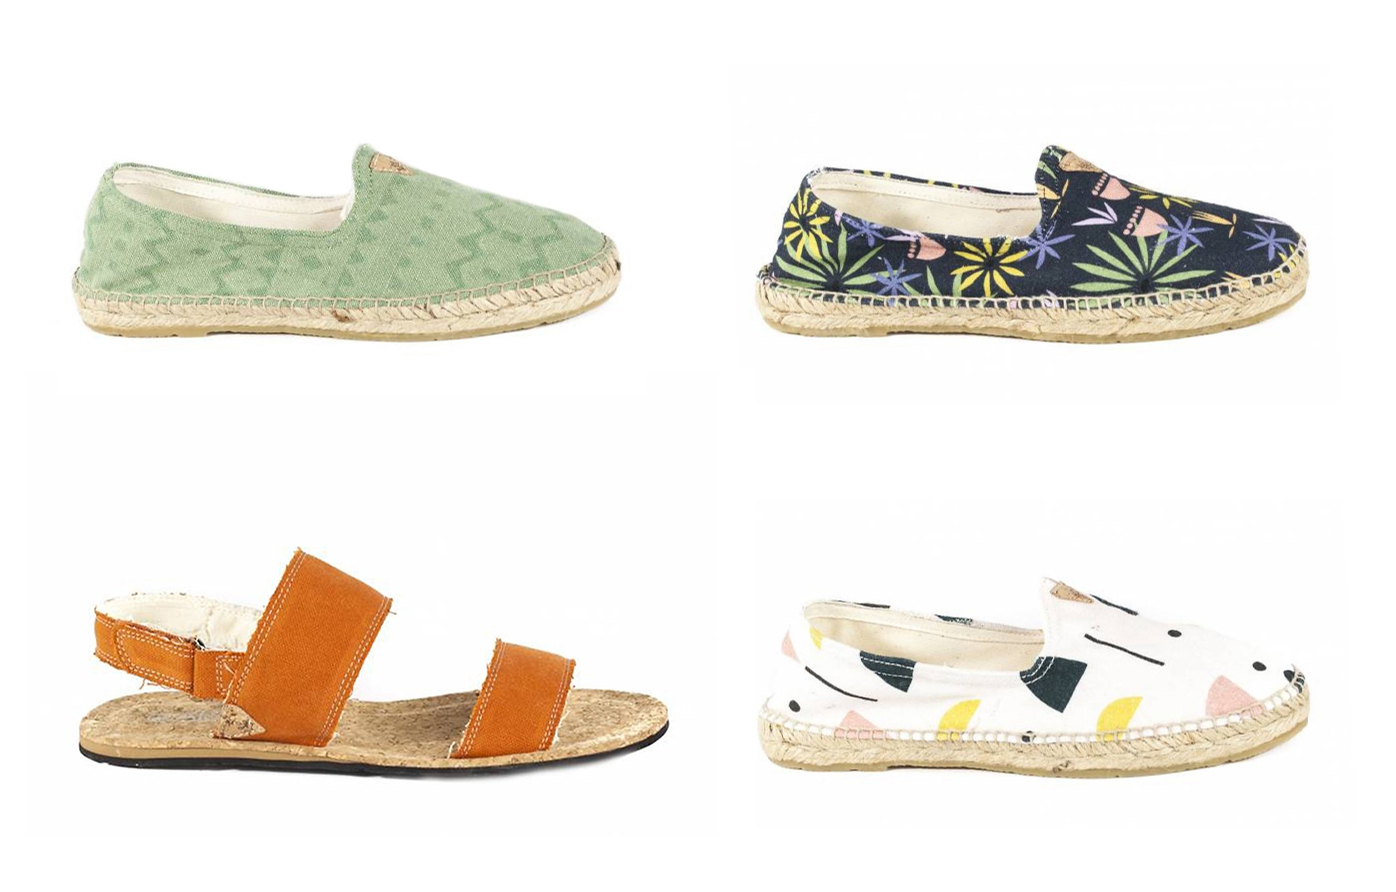 NEW at AVESU | Vegan Espandrilles by SLOWERS | Shop now!